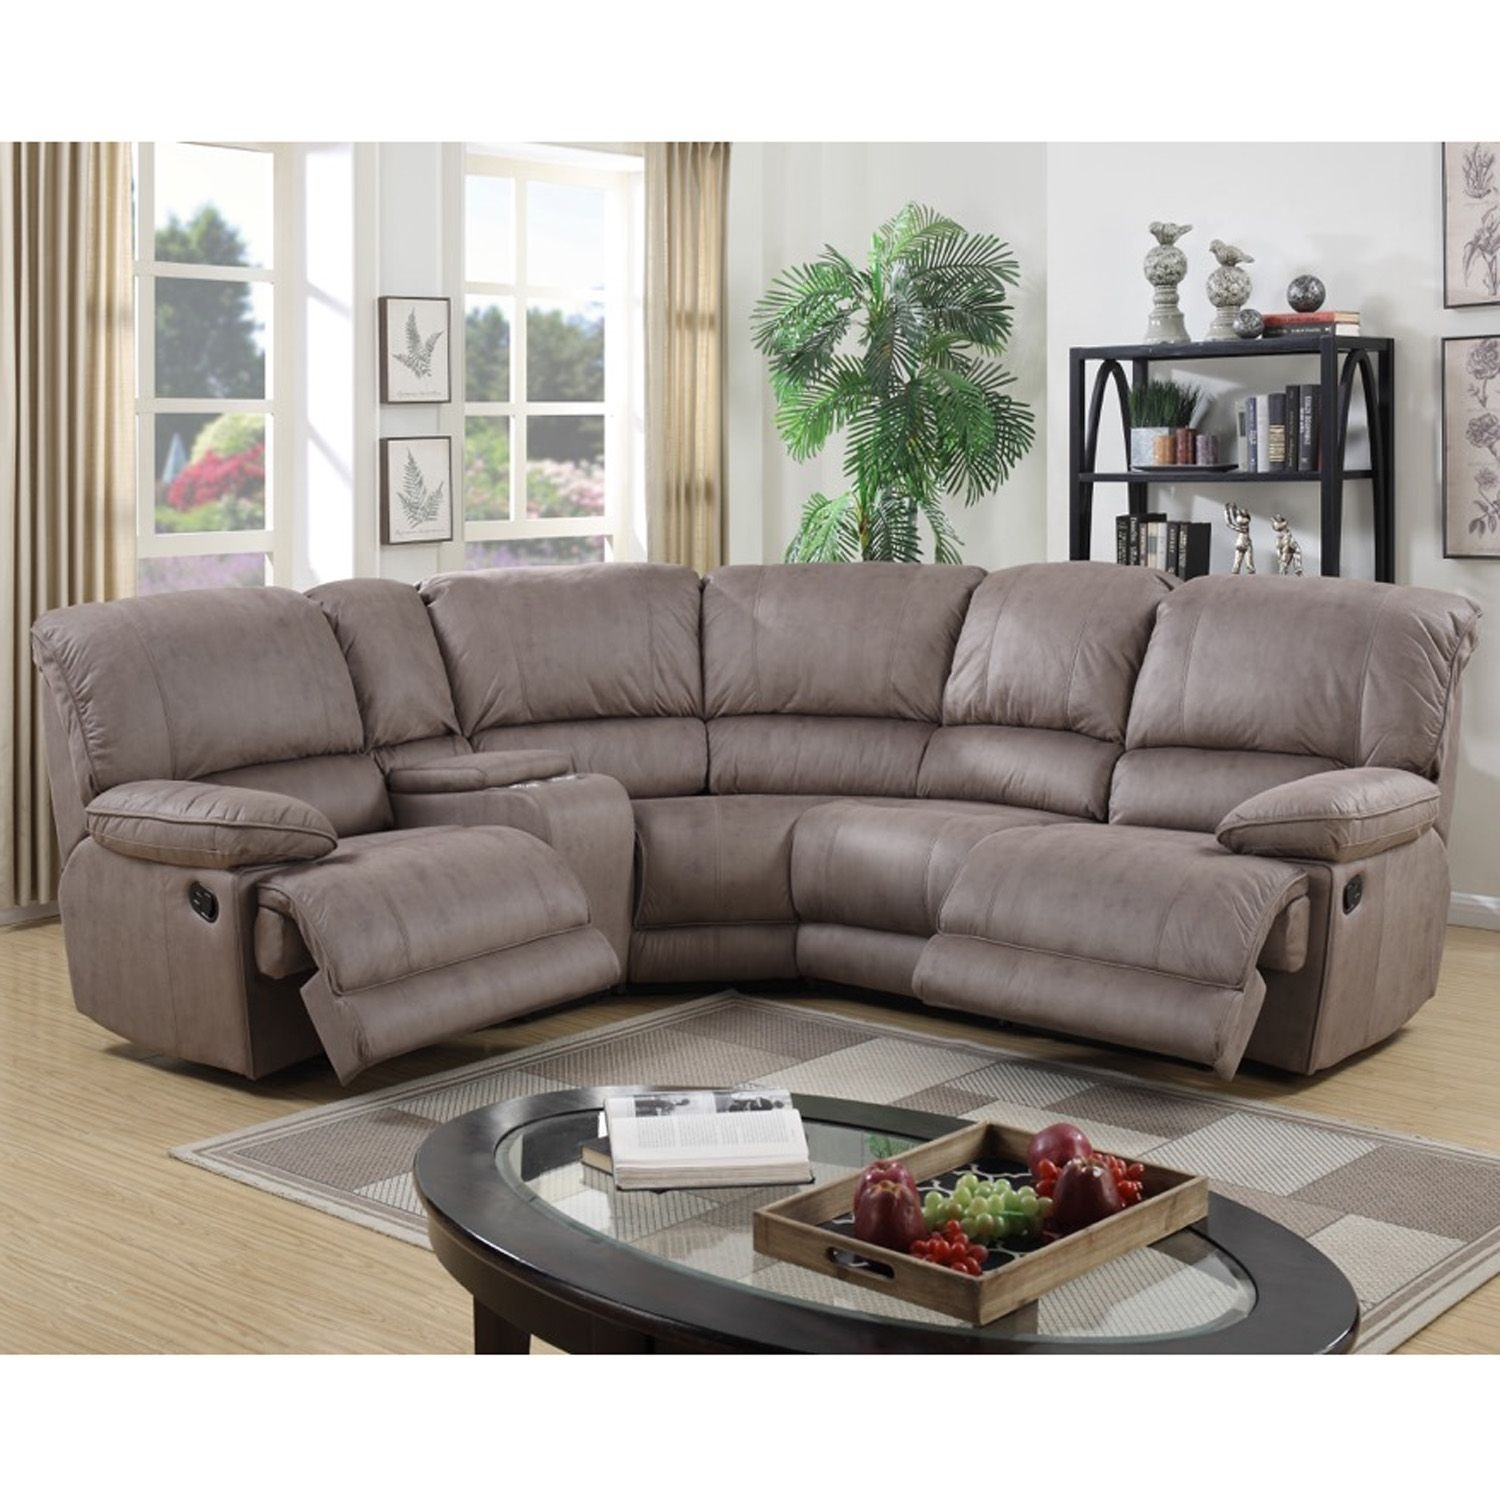 The Falkon Recliner Corner Sofa Is An Impressive And Stylish Suite With Marcus Chocolate 6 Piece Sectionals With Power Headrest And Usb (View 18 of 30)